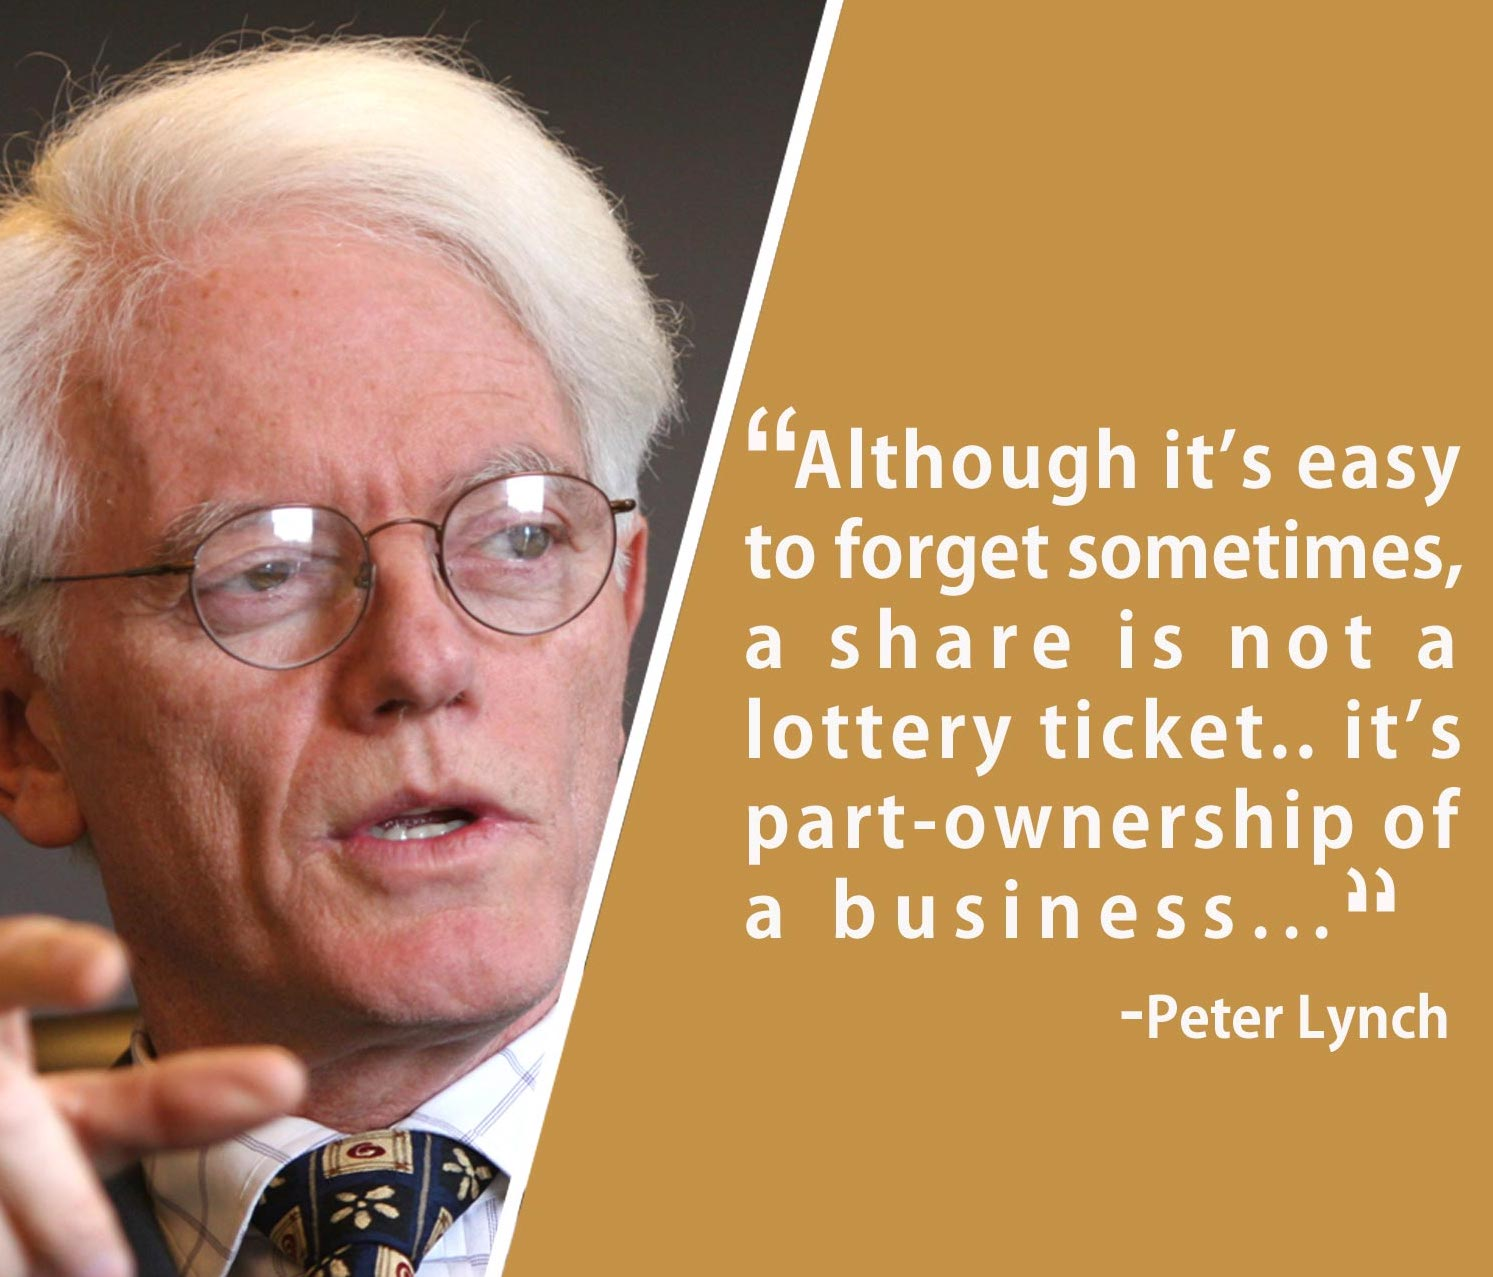 peter lynch quotes - Trade Brains